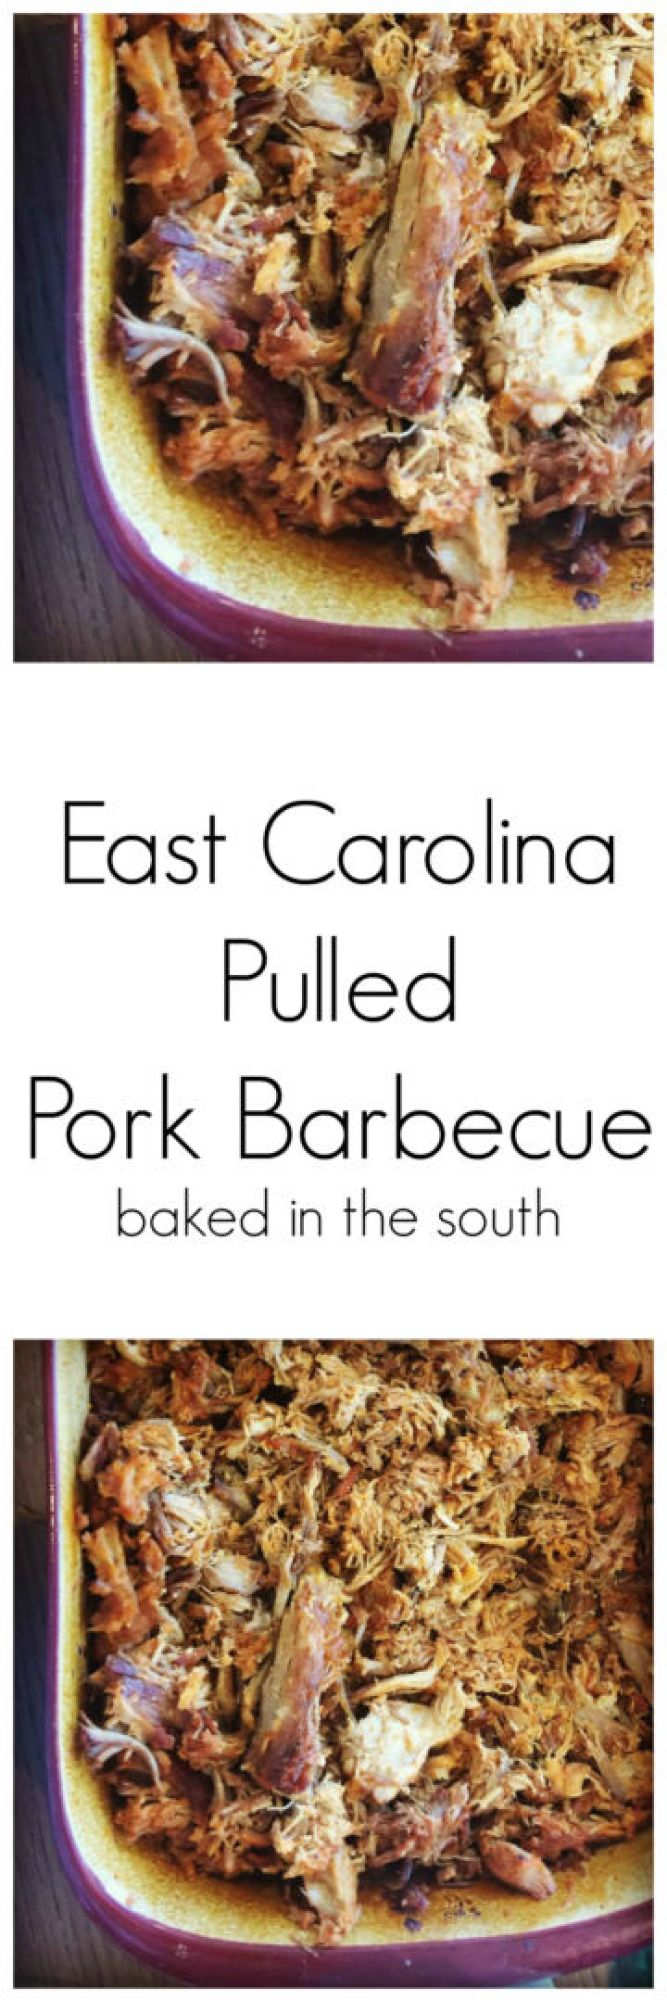 East Carolina Pork Barbecue